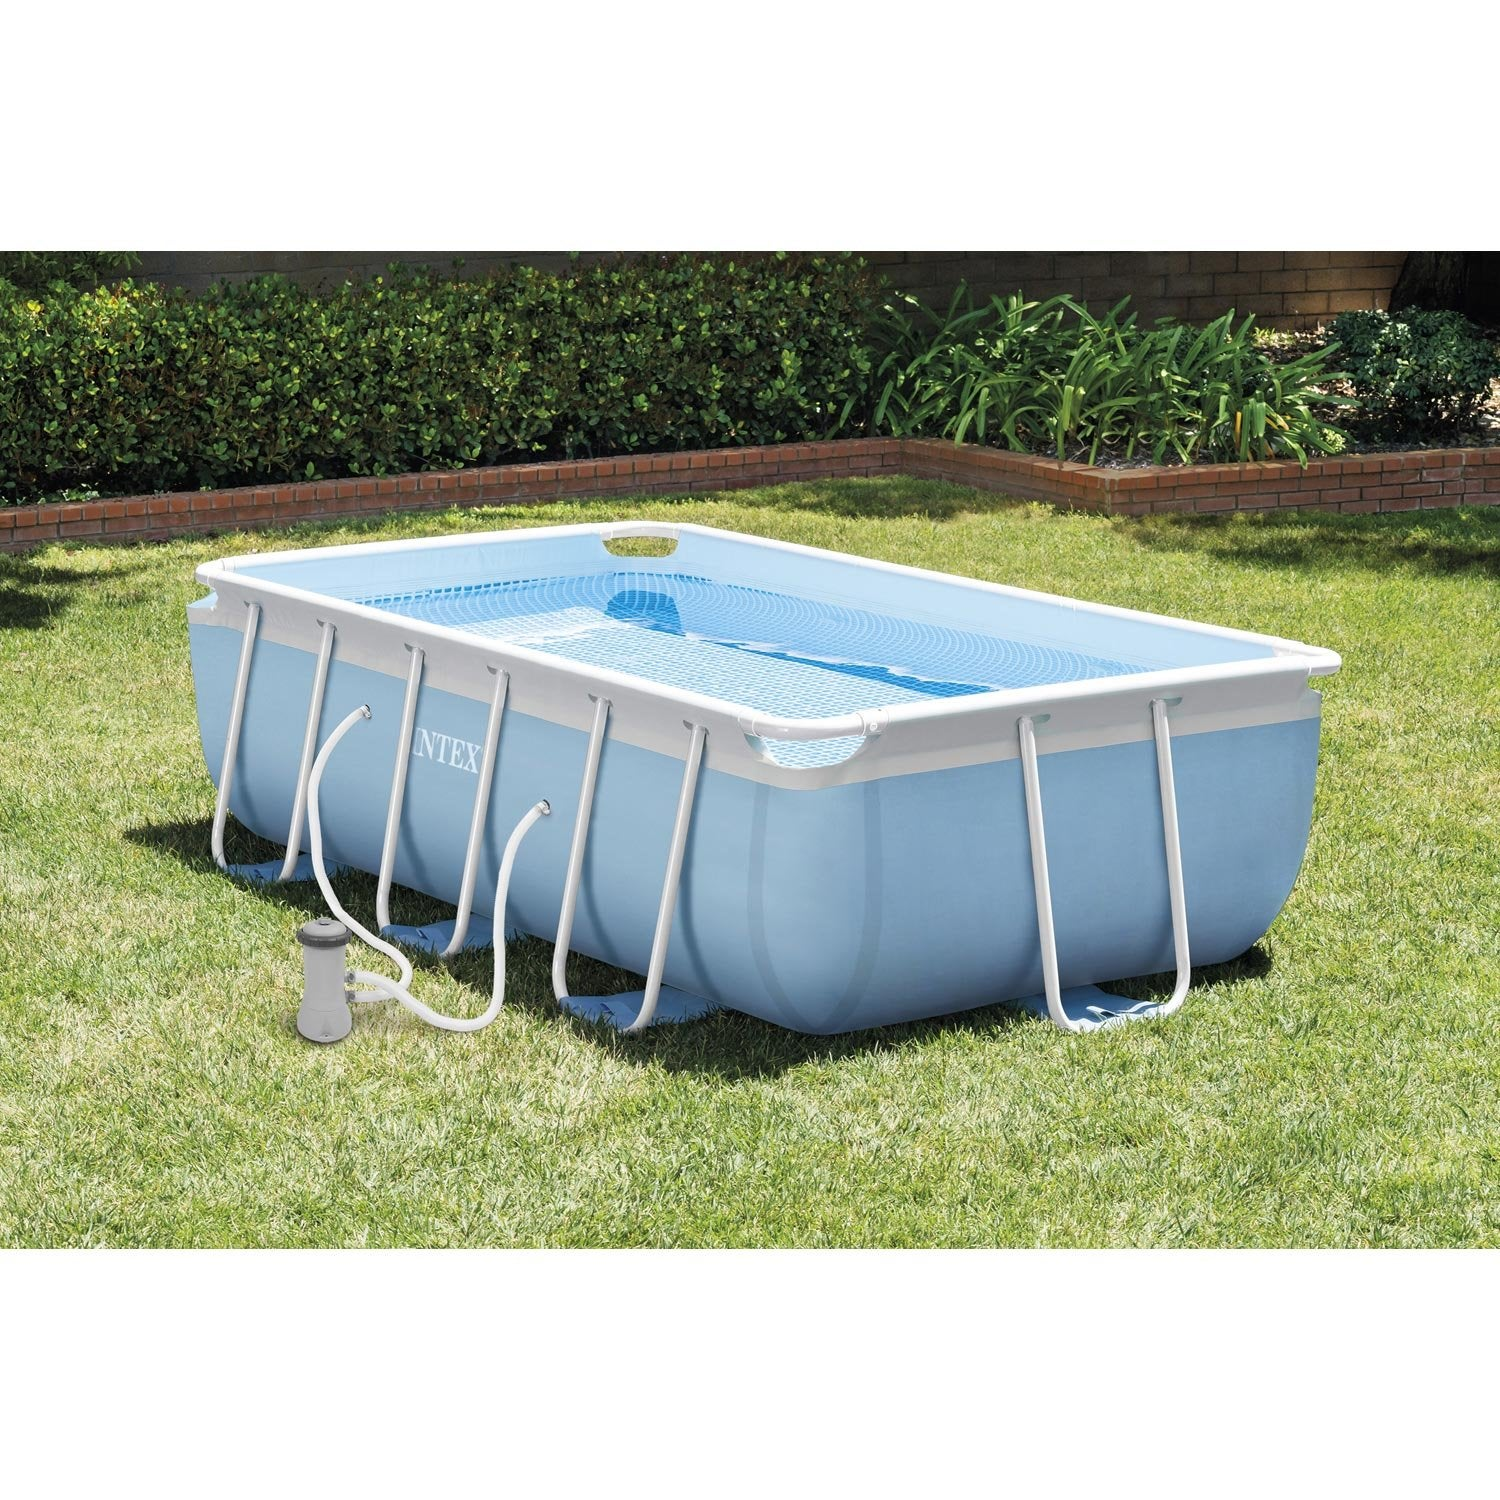 Piscine hors sol autoportante tubulaire intex l 3 4 x l 2 for Piscine hors sol teck